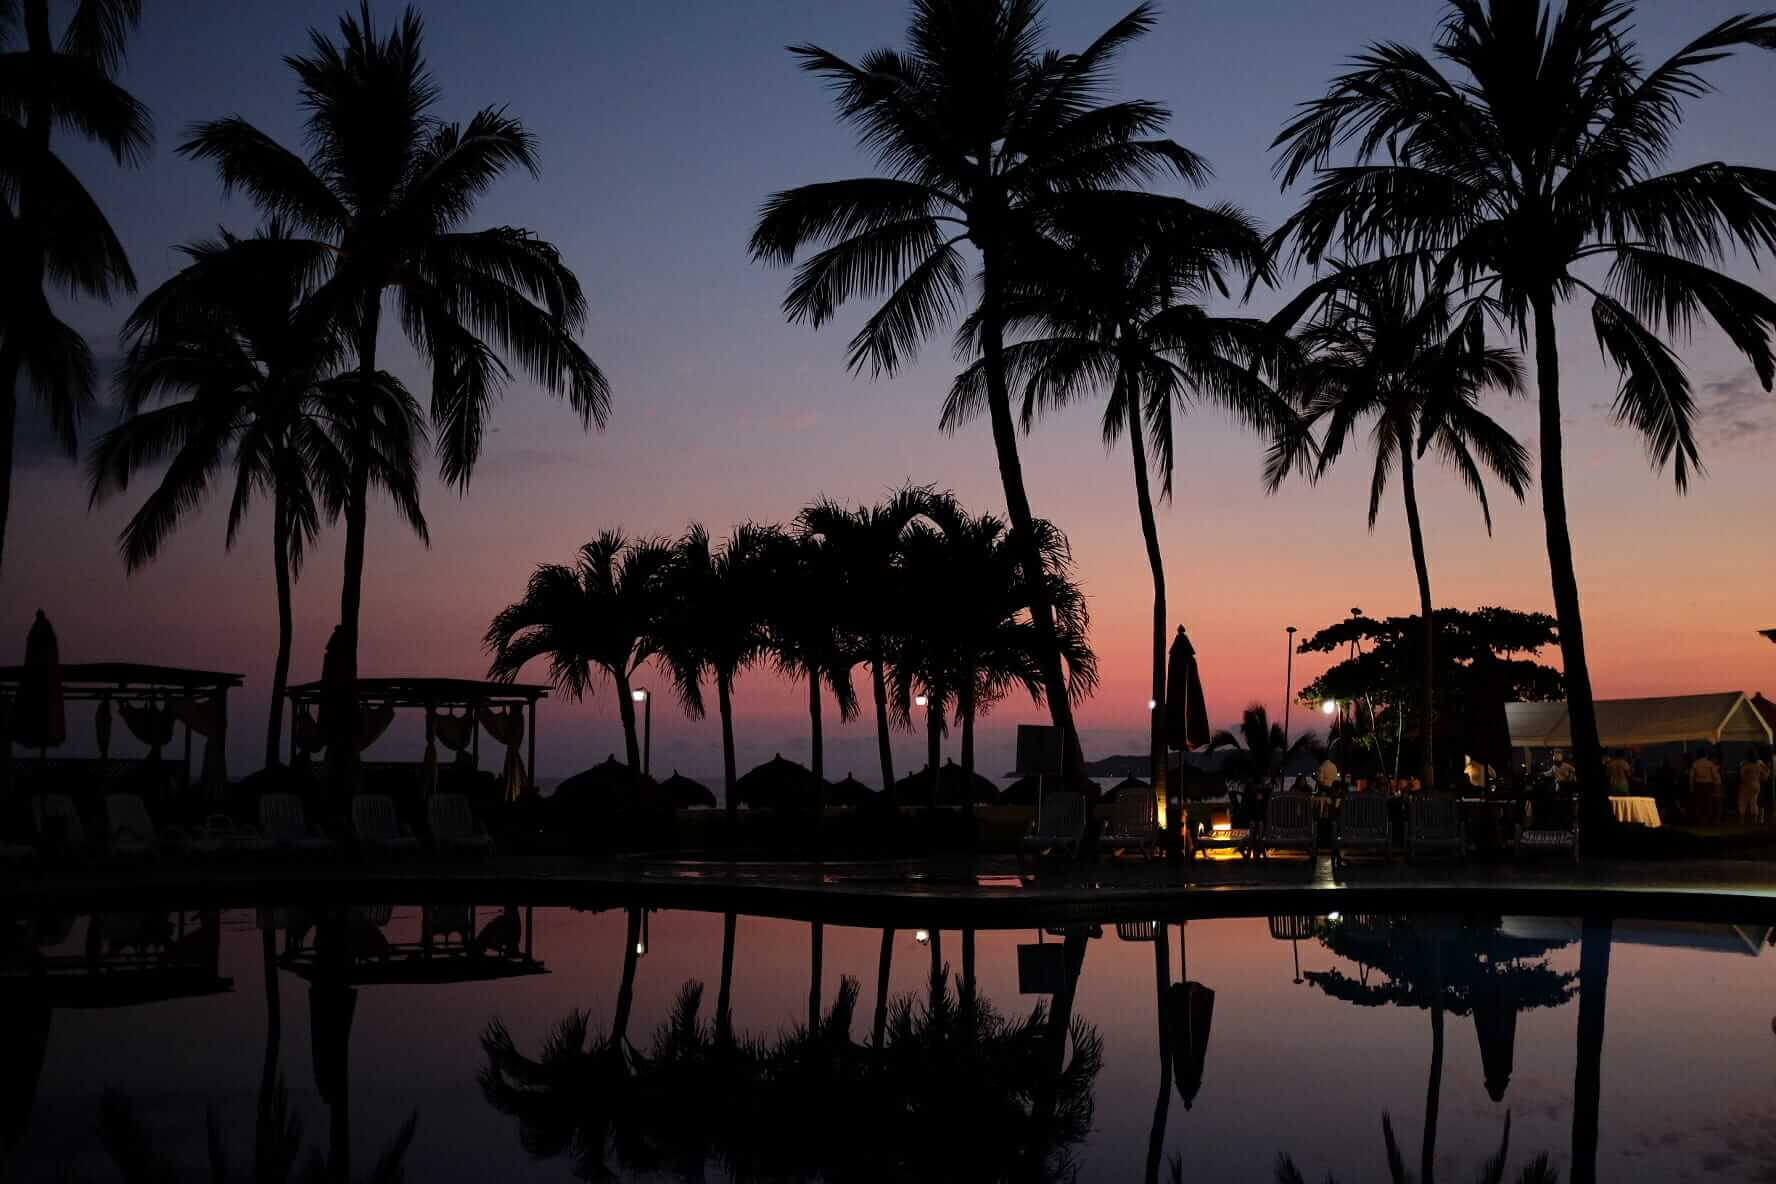 The Mexico sunset and palm trees